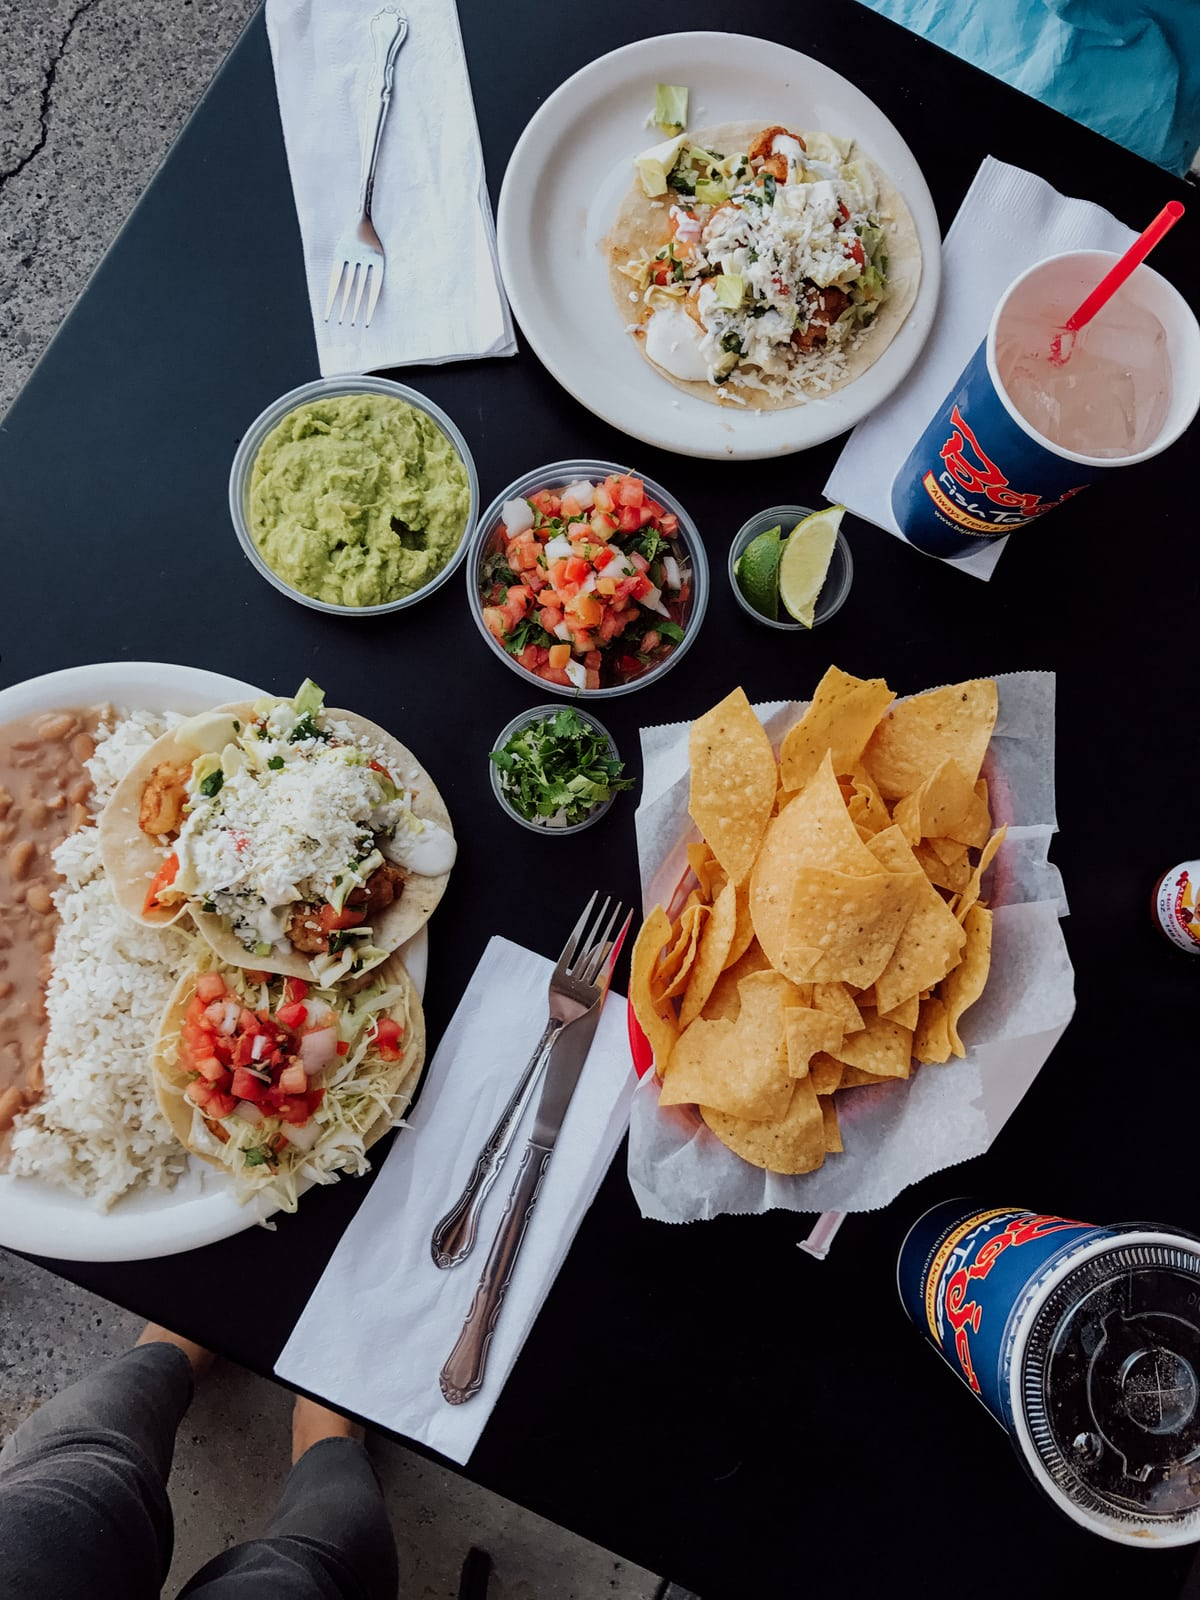 Baja Fish Tacos - our favorite place for shrimp or fish tacos in Orange County